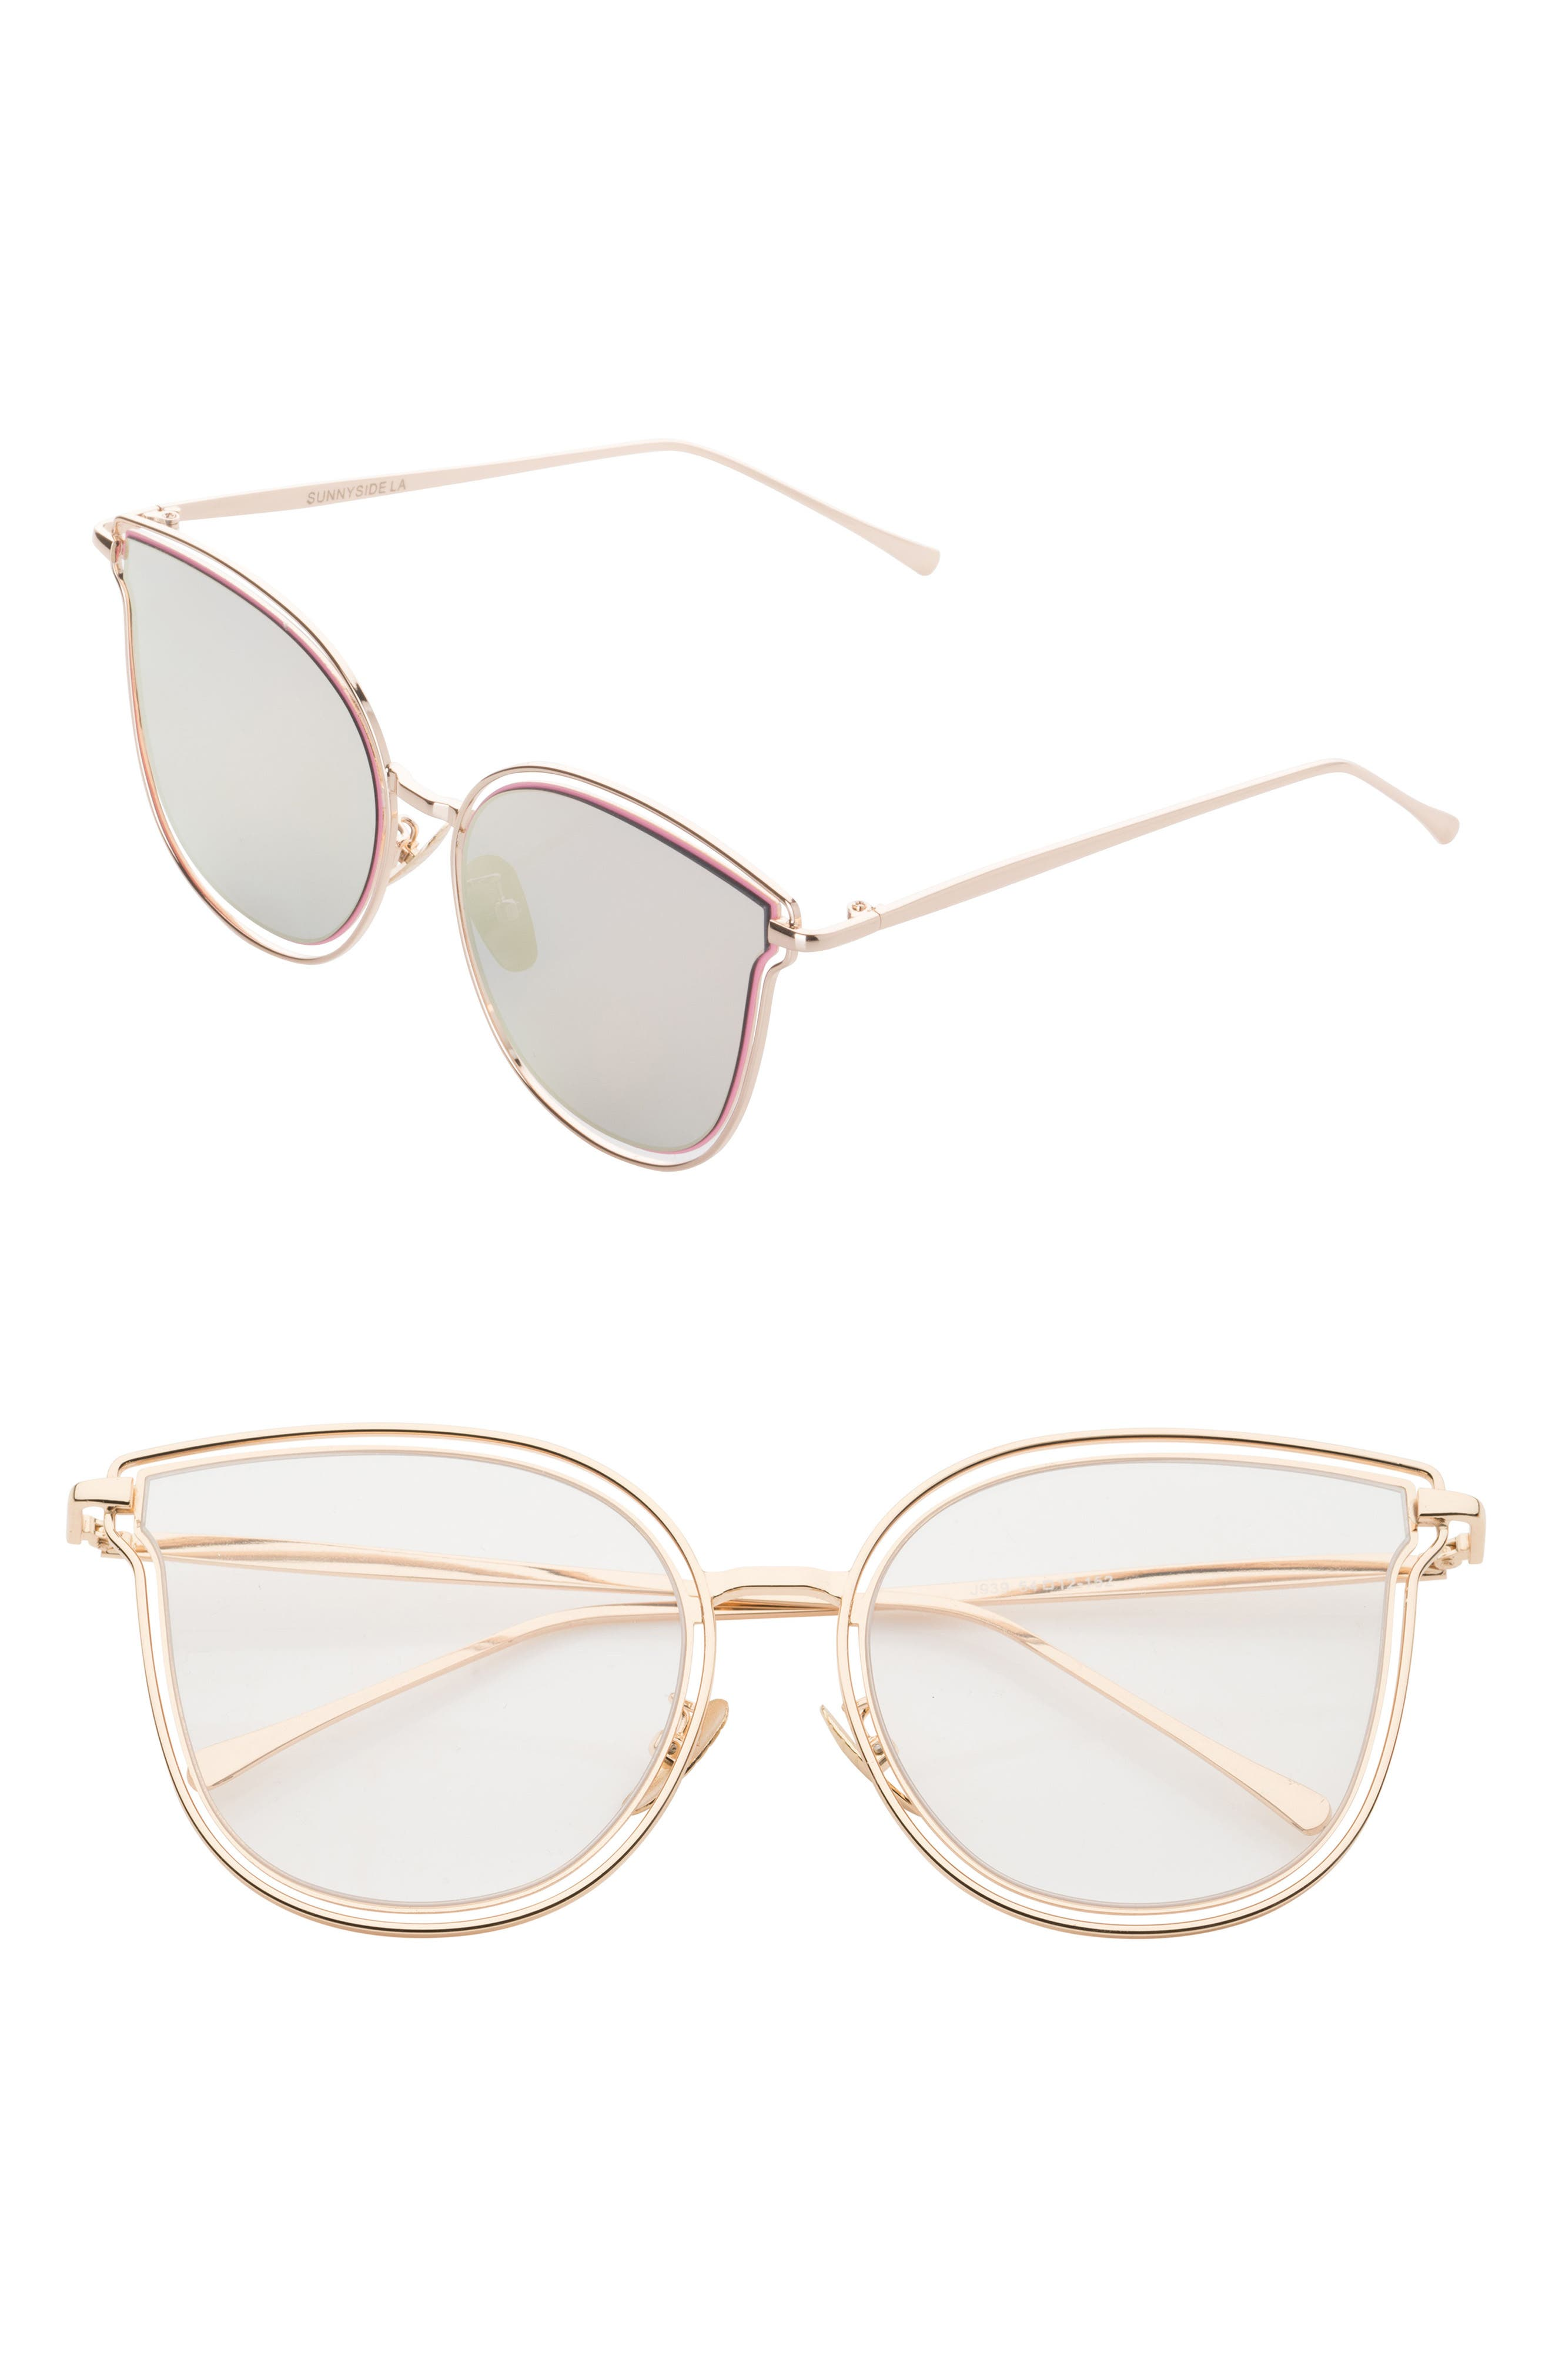 54mm Cat Eye Clear Glasses,                         Main,                         color, Gold